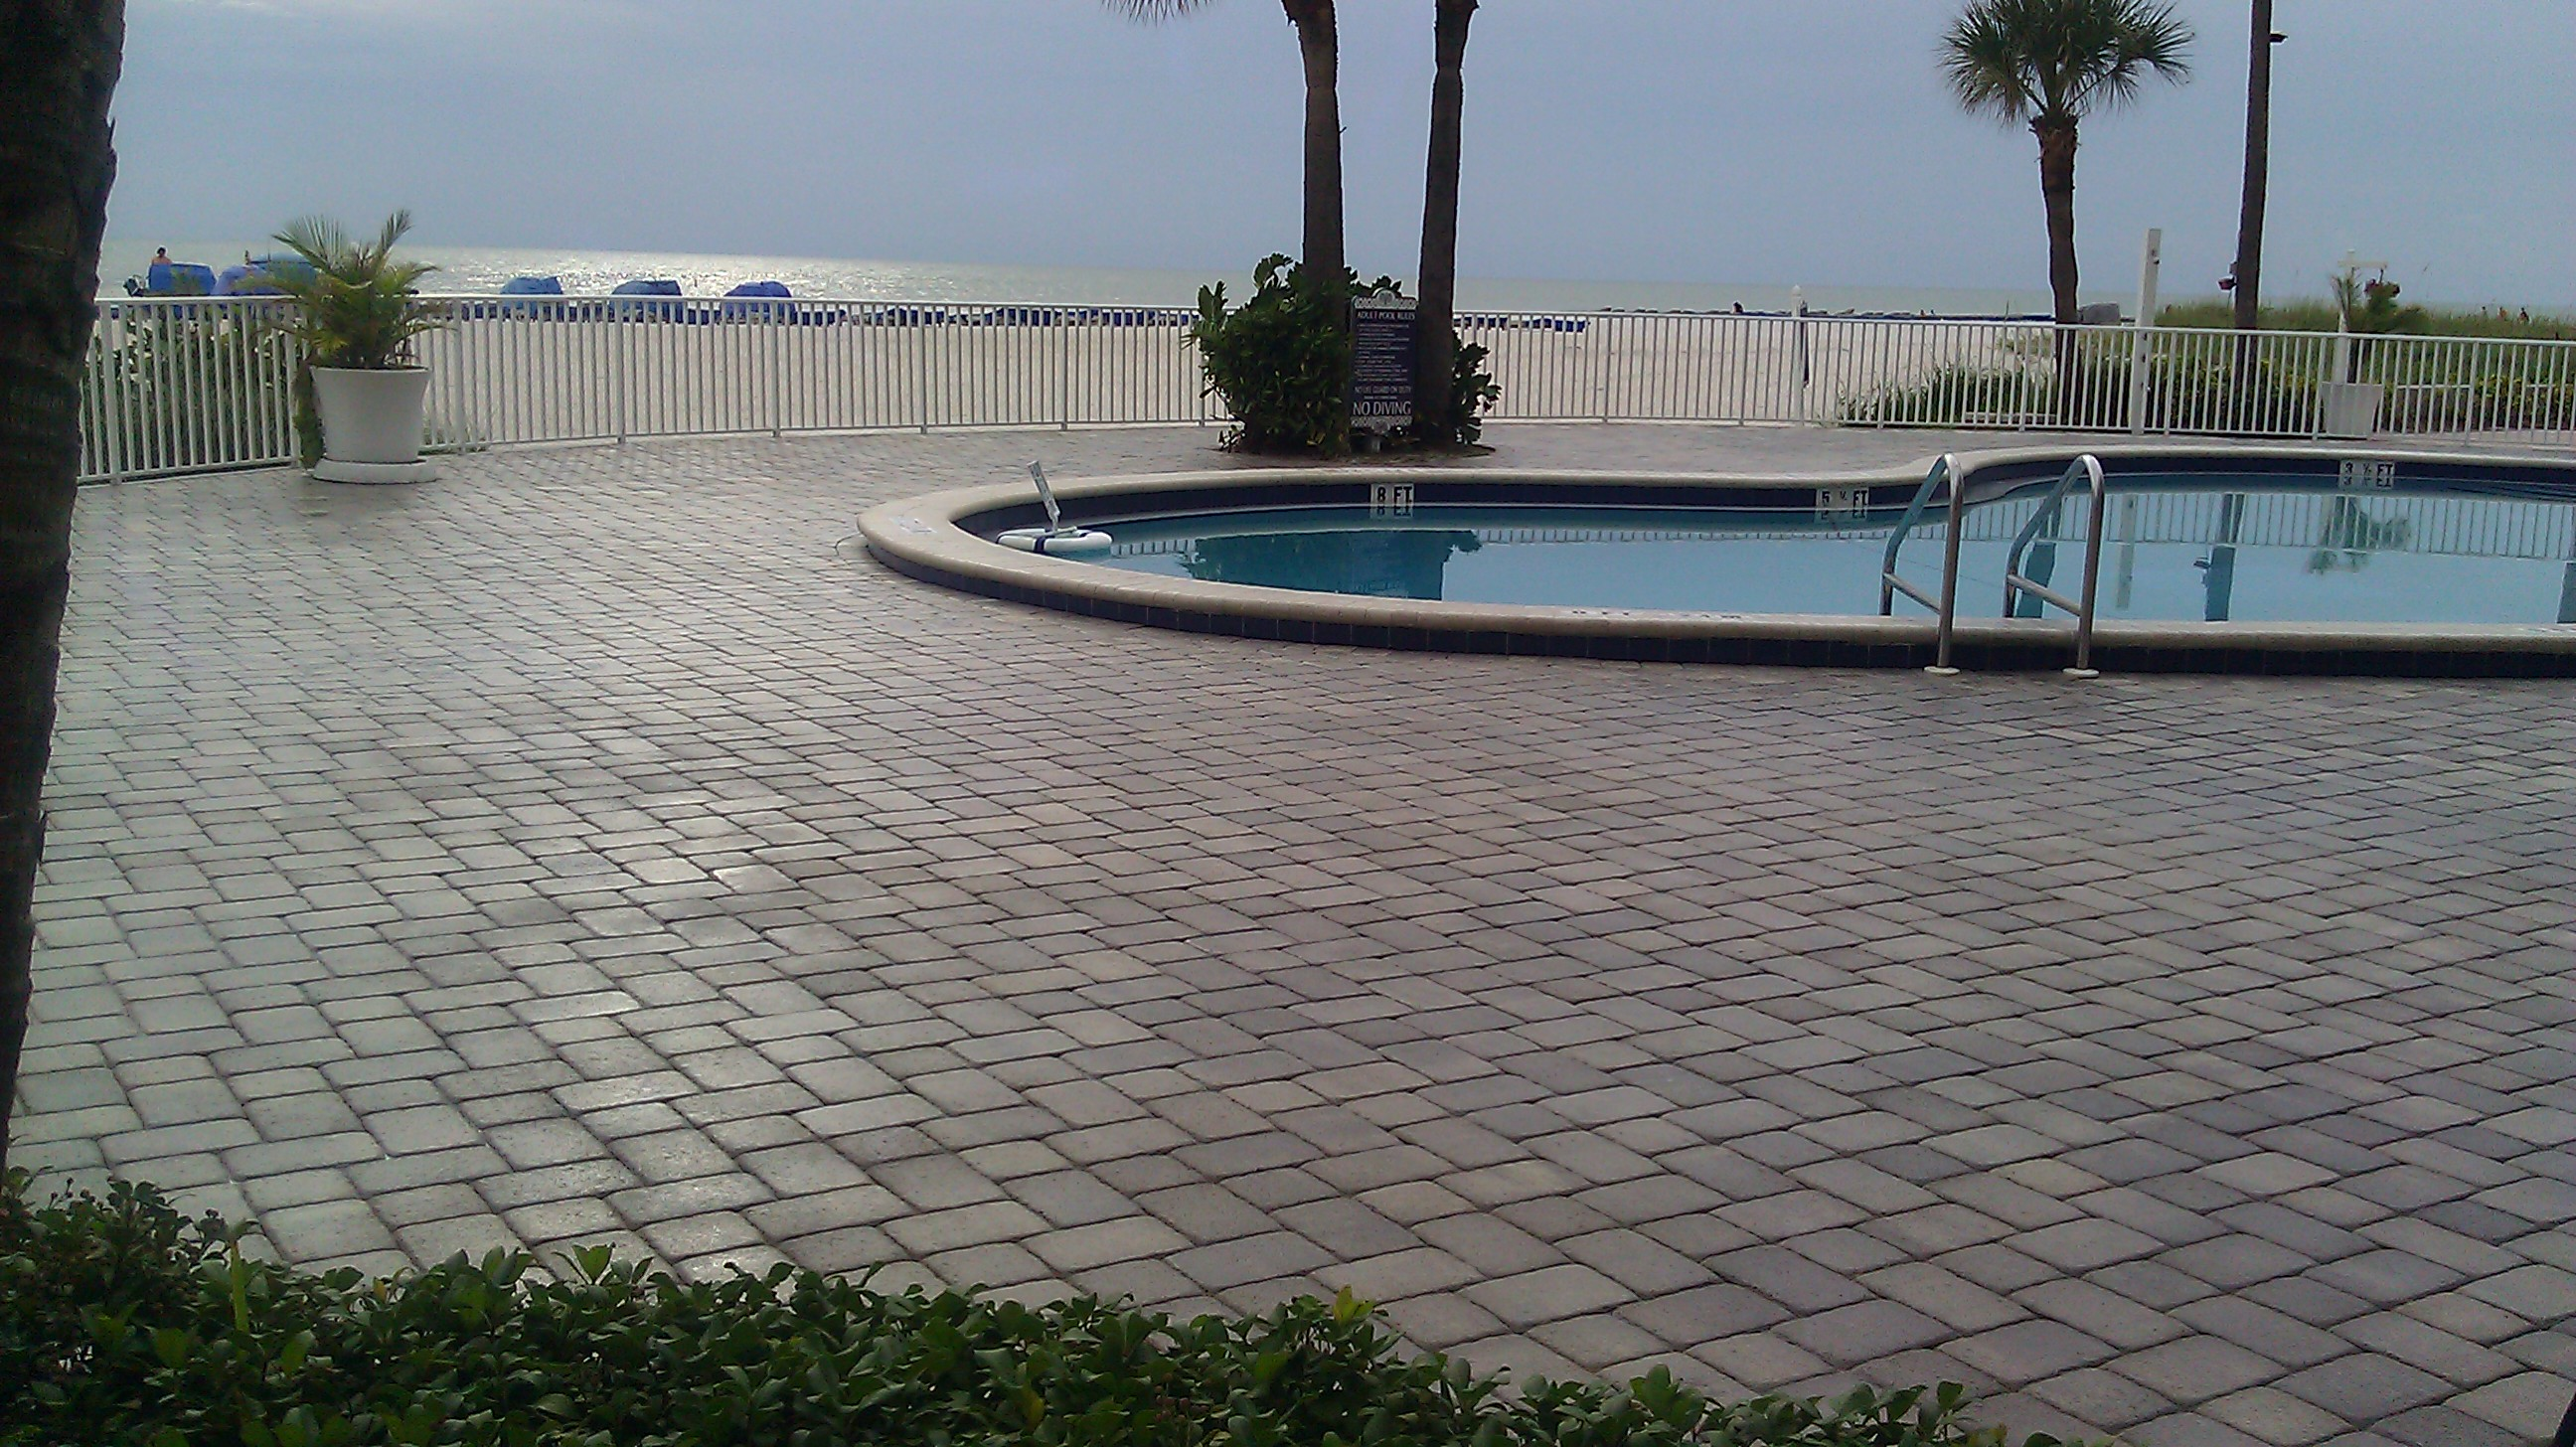 Pavers Commercial Pool Deck And Driveway Pavers Brick